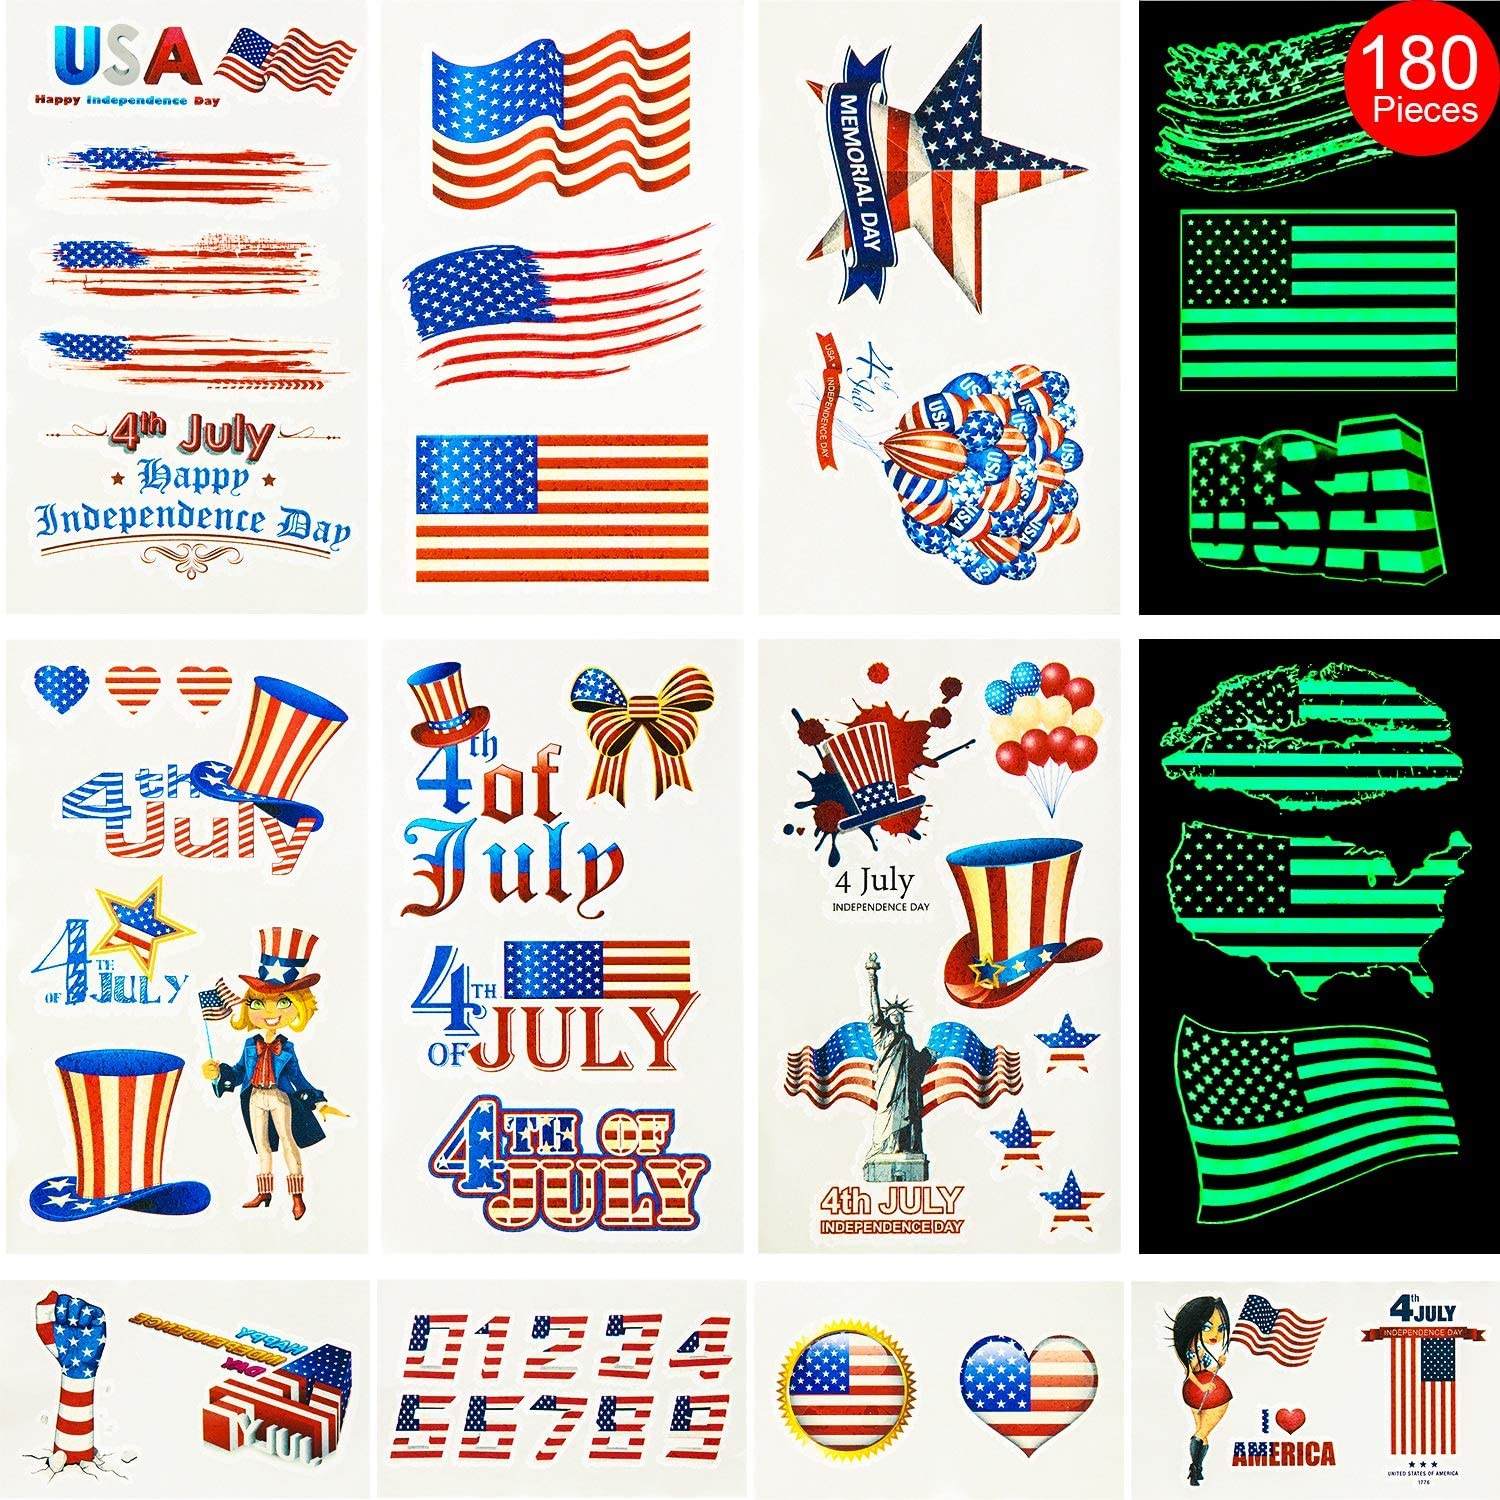 Hicarer Fourth of July Tattoos 180 Pieces 48 Sheets USA Tattoos Patriotic Independence Day Temporary Tattoos Including 24 Pieces Luminous Tattoos for Party Decor Party Supplies